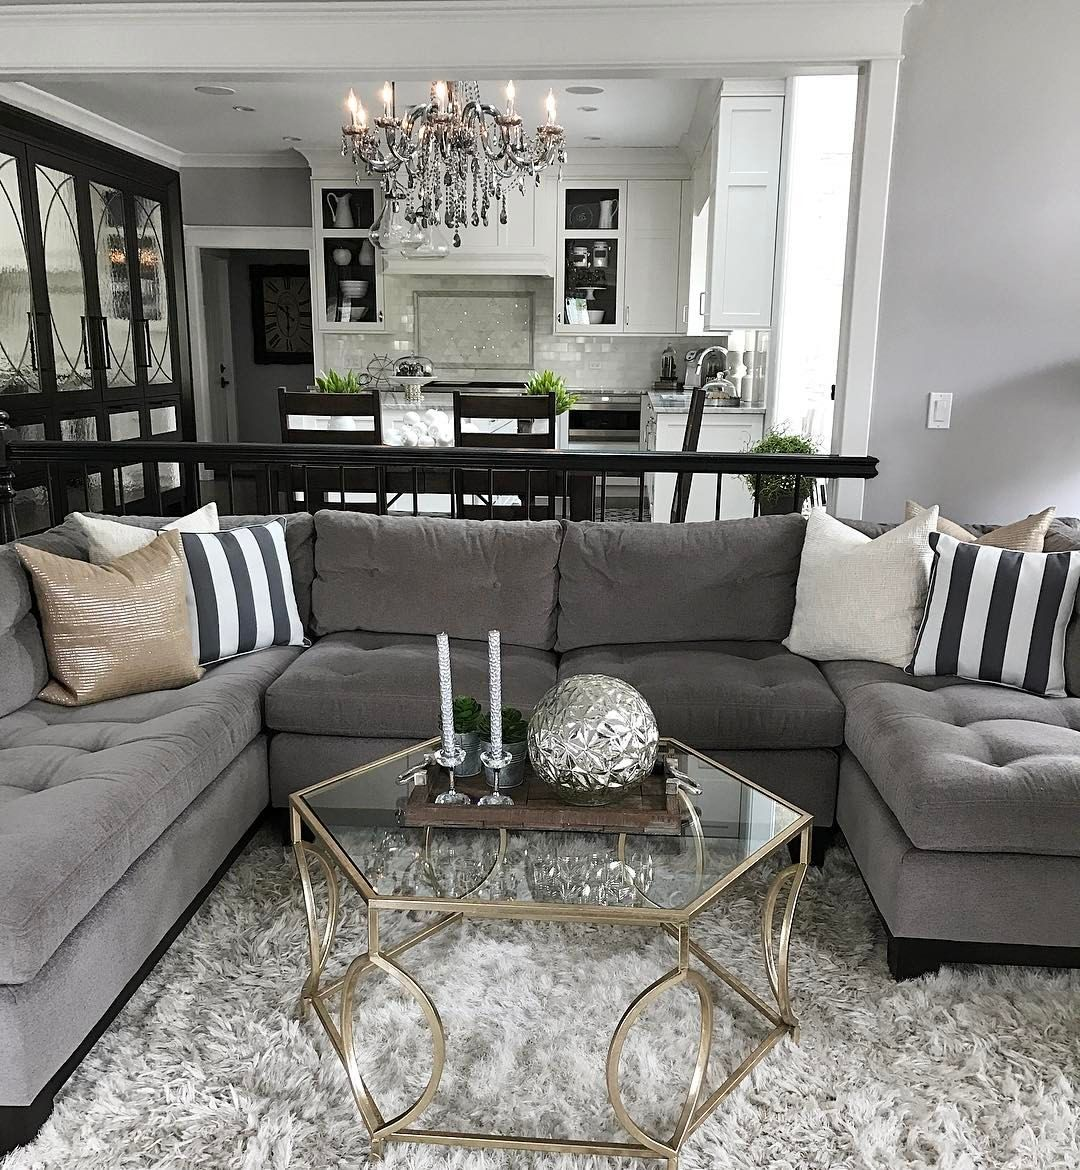 Change Up The Gray Couch With And Chic Black And White Striped Accents Great Pictures